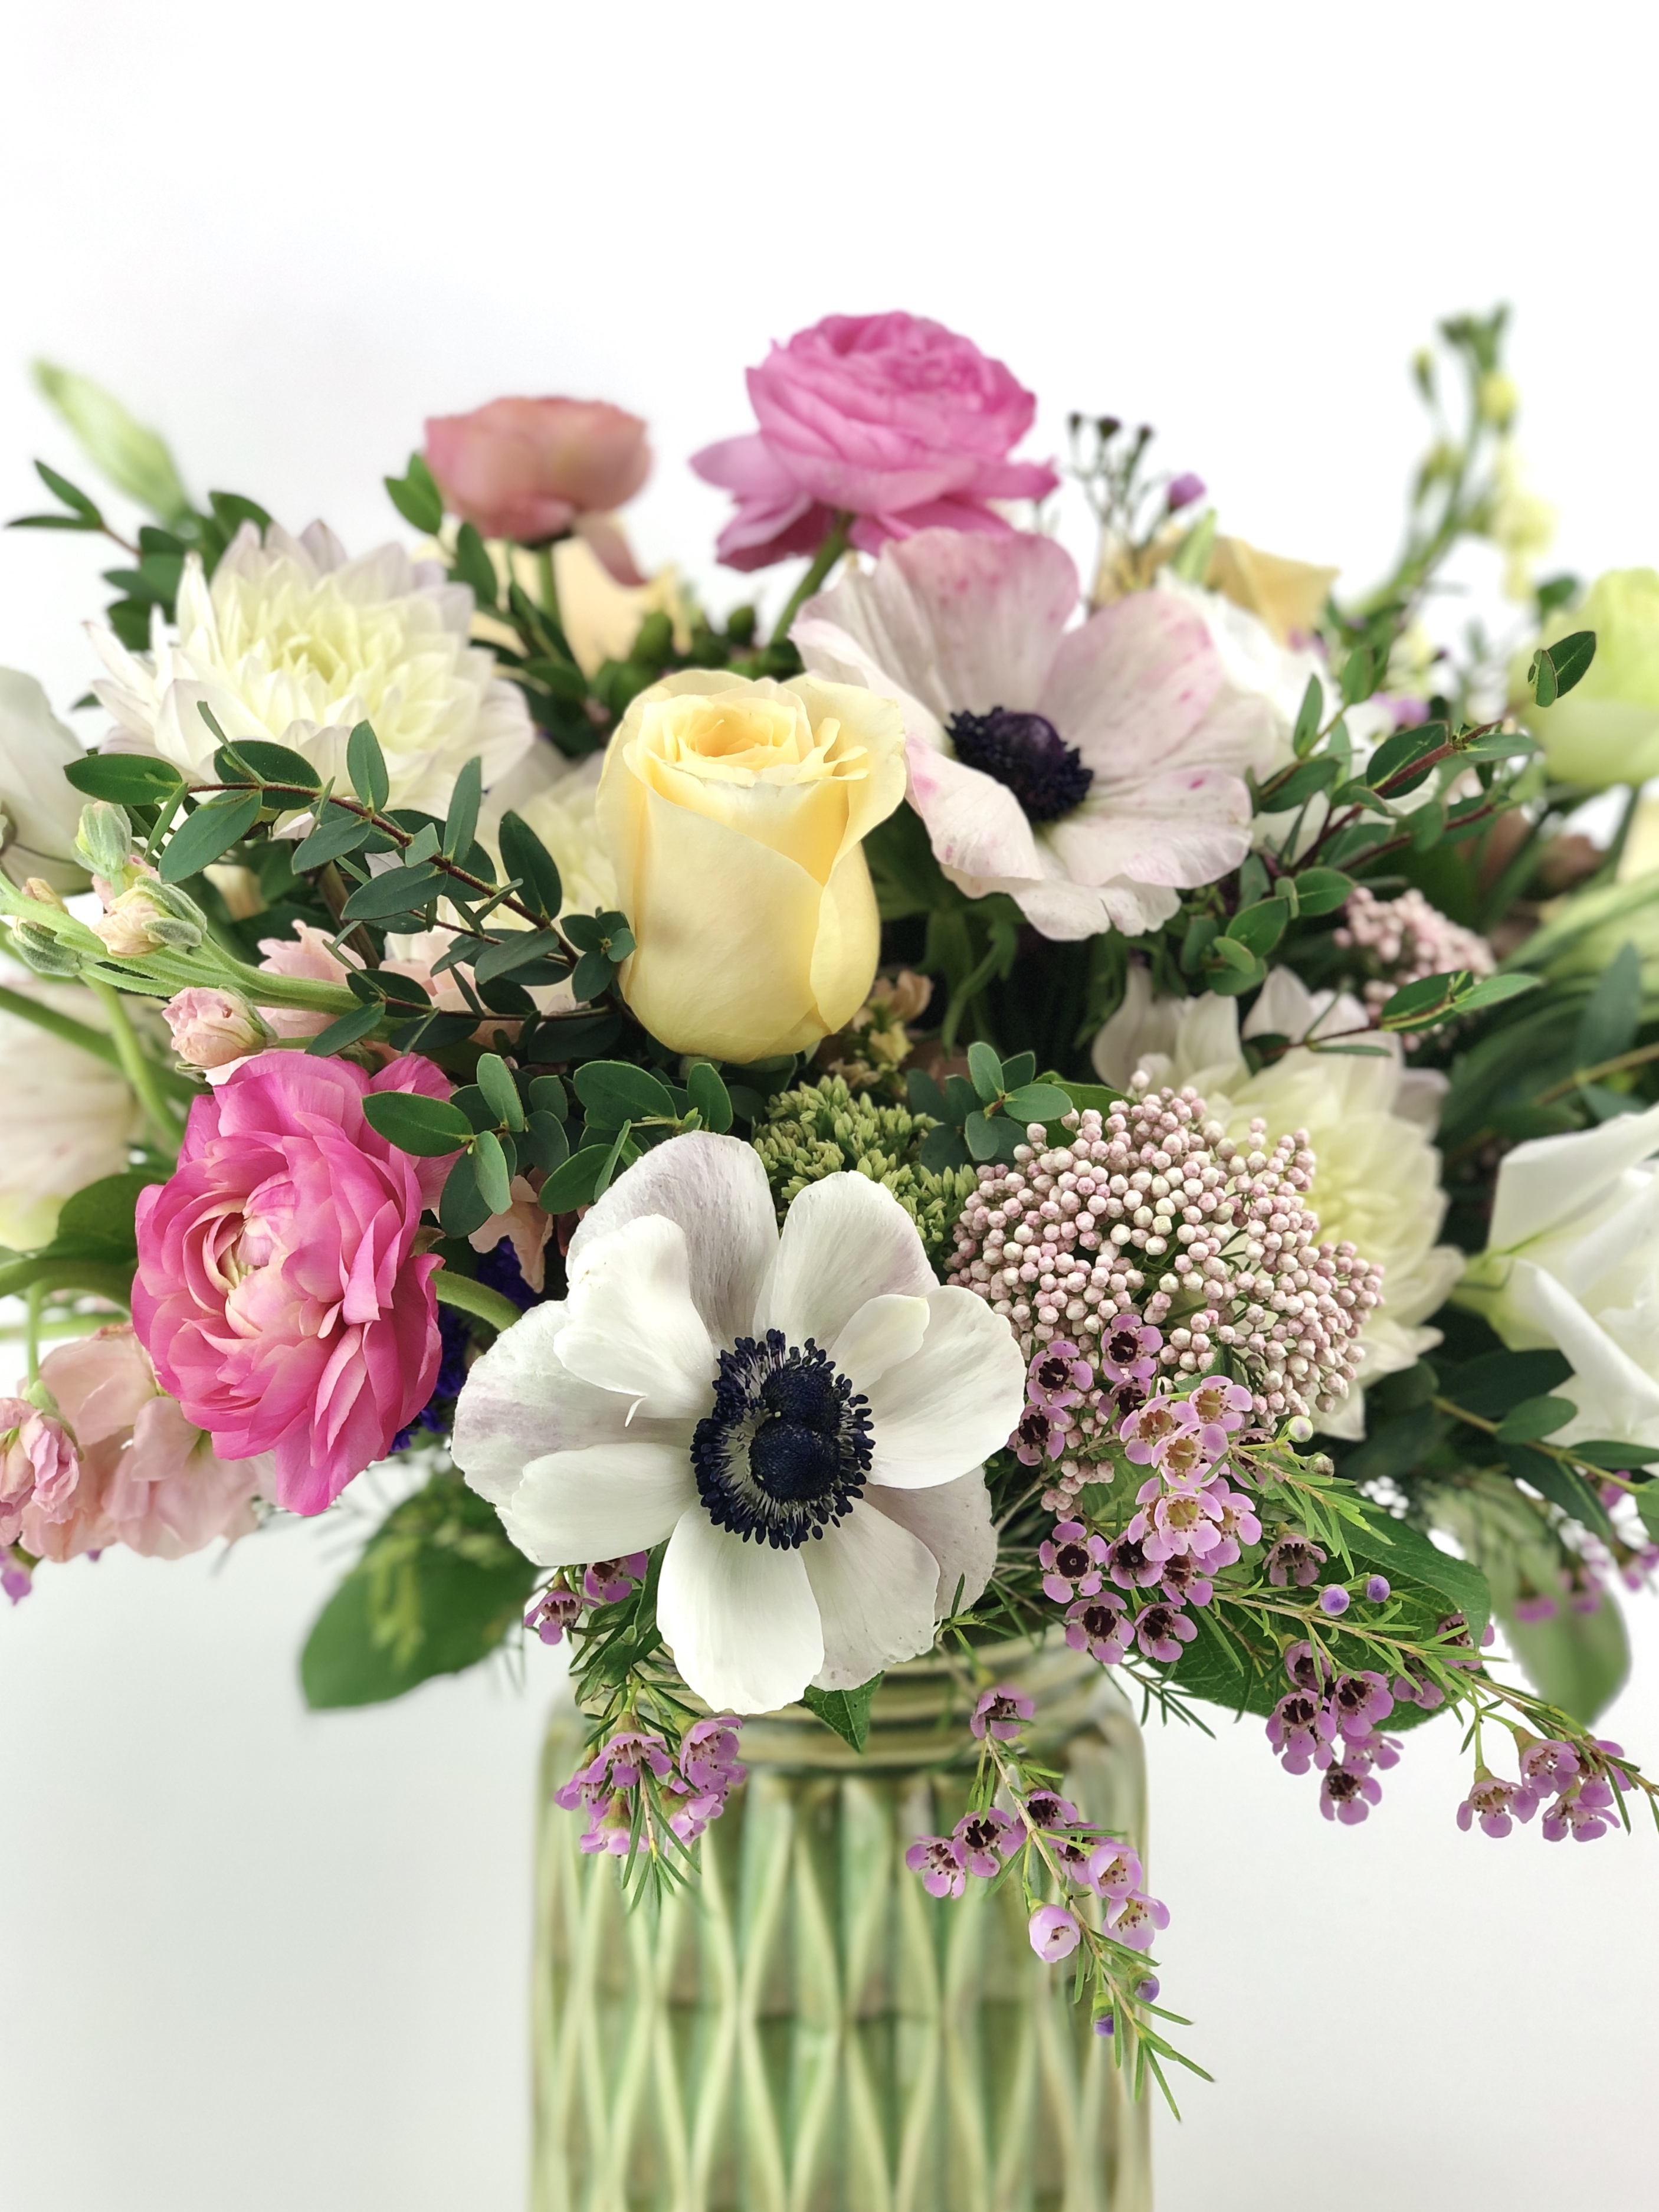 Hospital Flower Delivery, Same Day & Express Flower Delivery